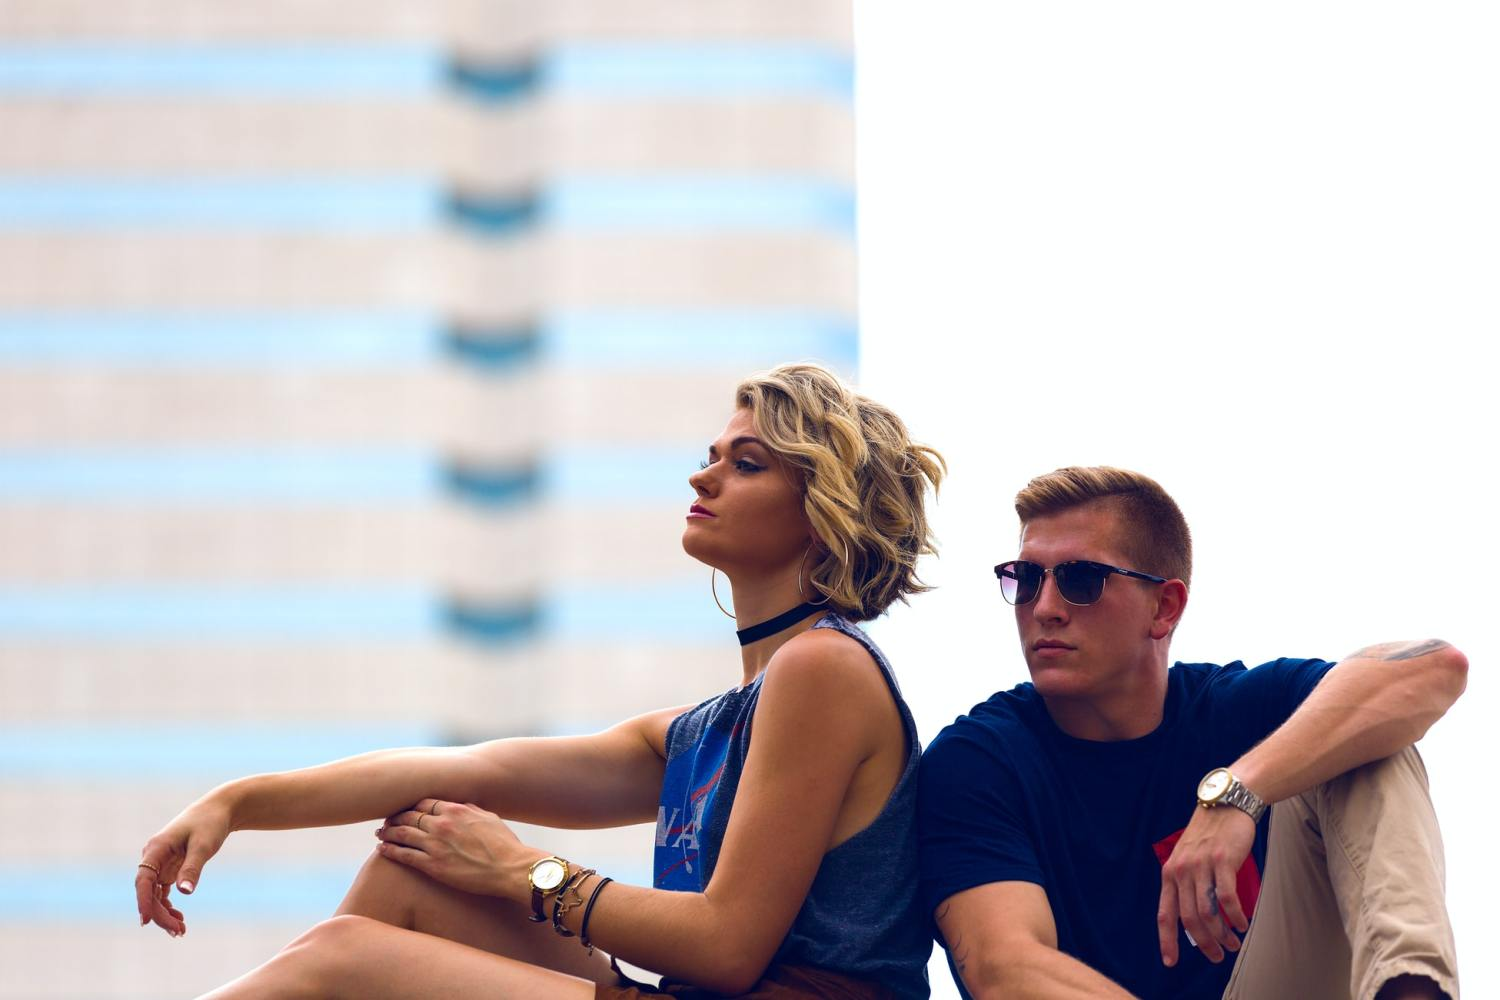 key signs you could be keeping bad company